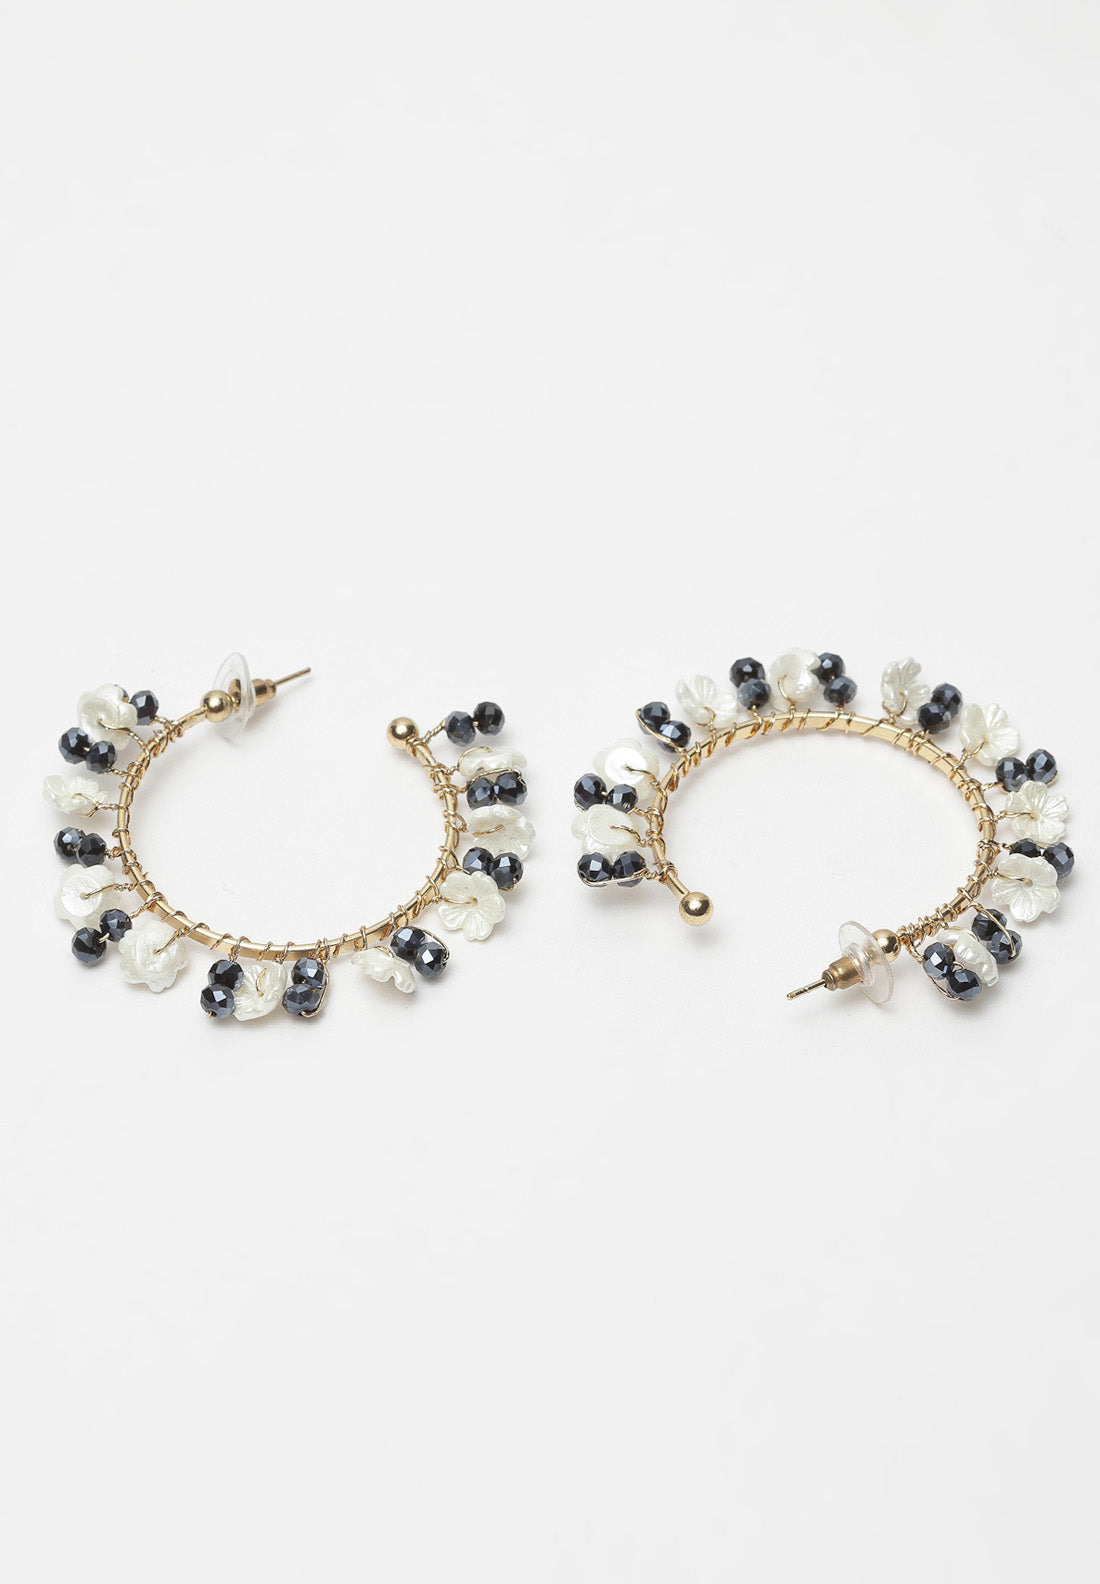 Avant-Garde Paris Black and White Beaded Hoop Earrings